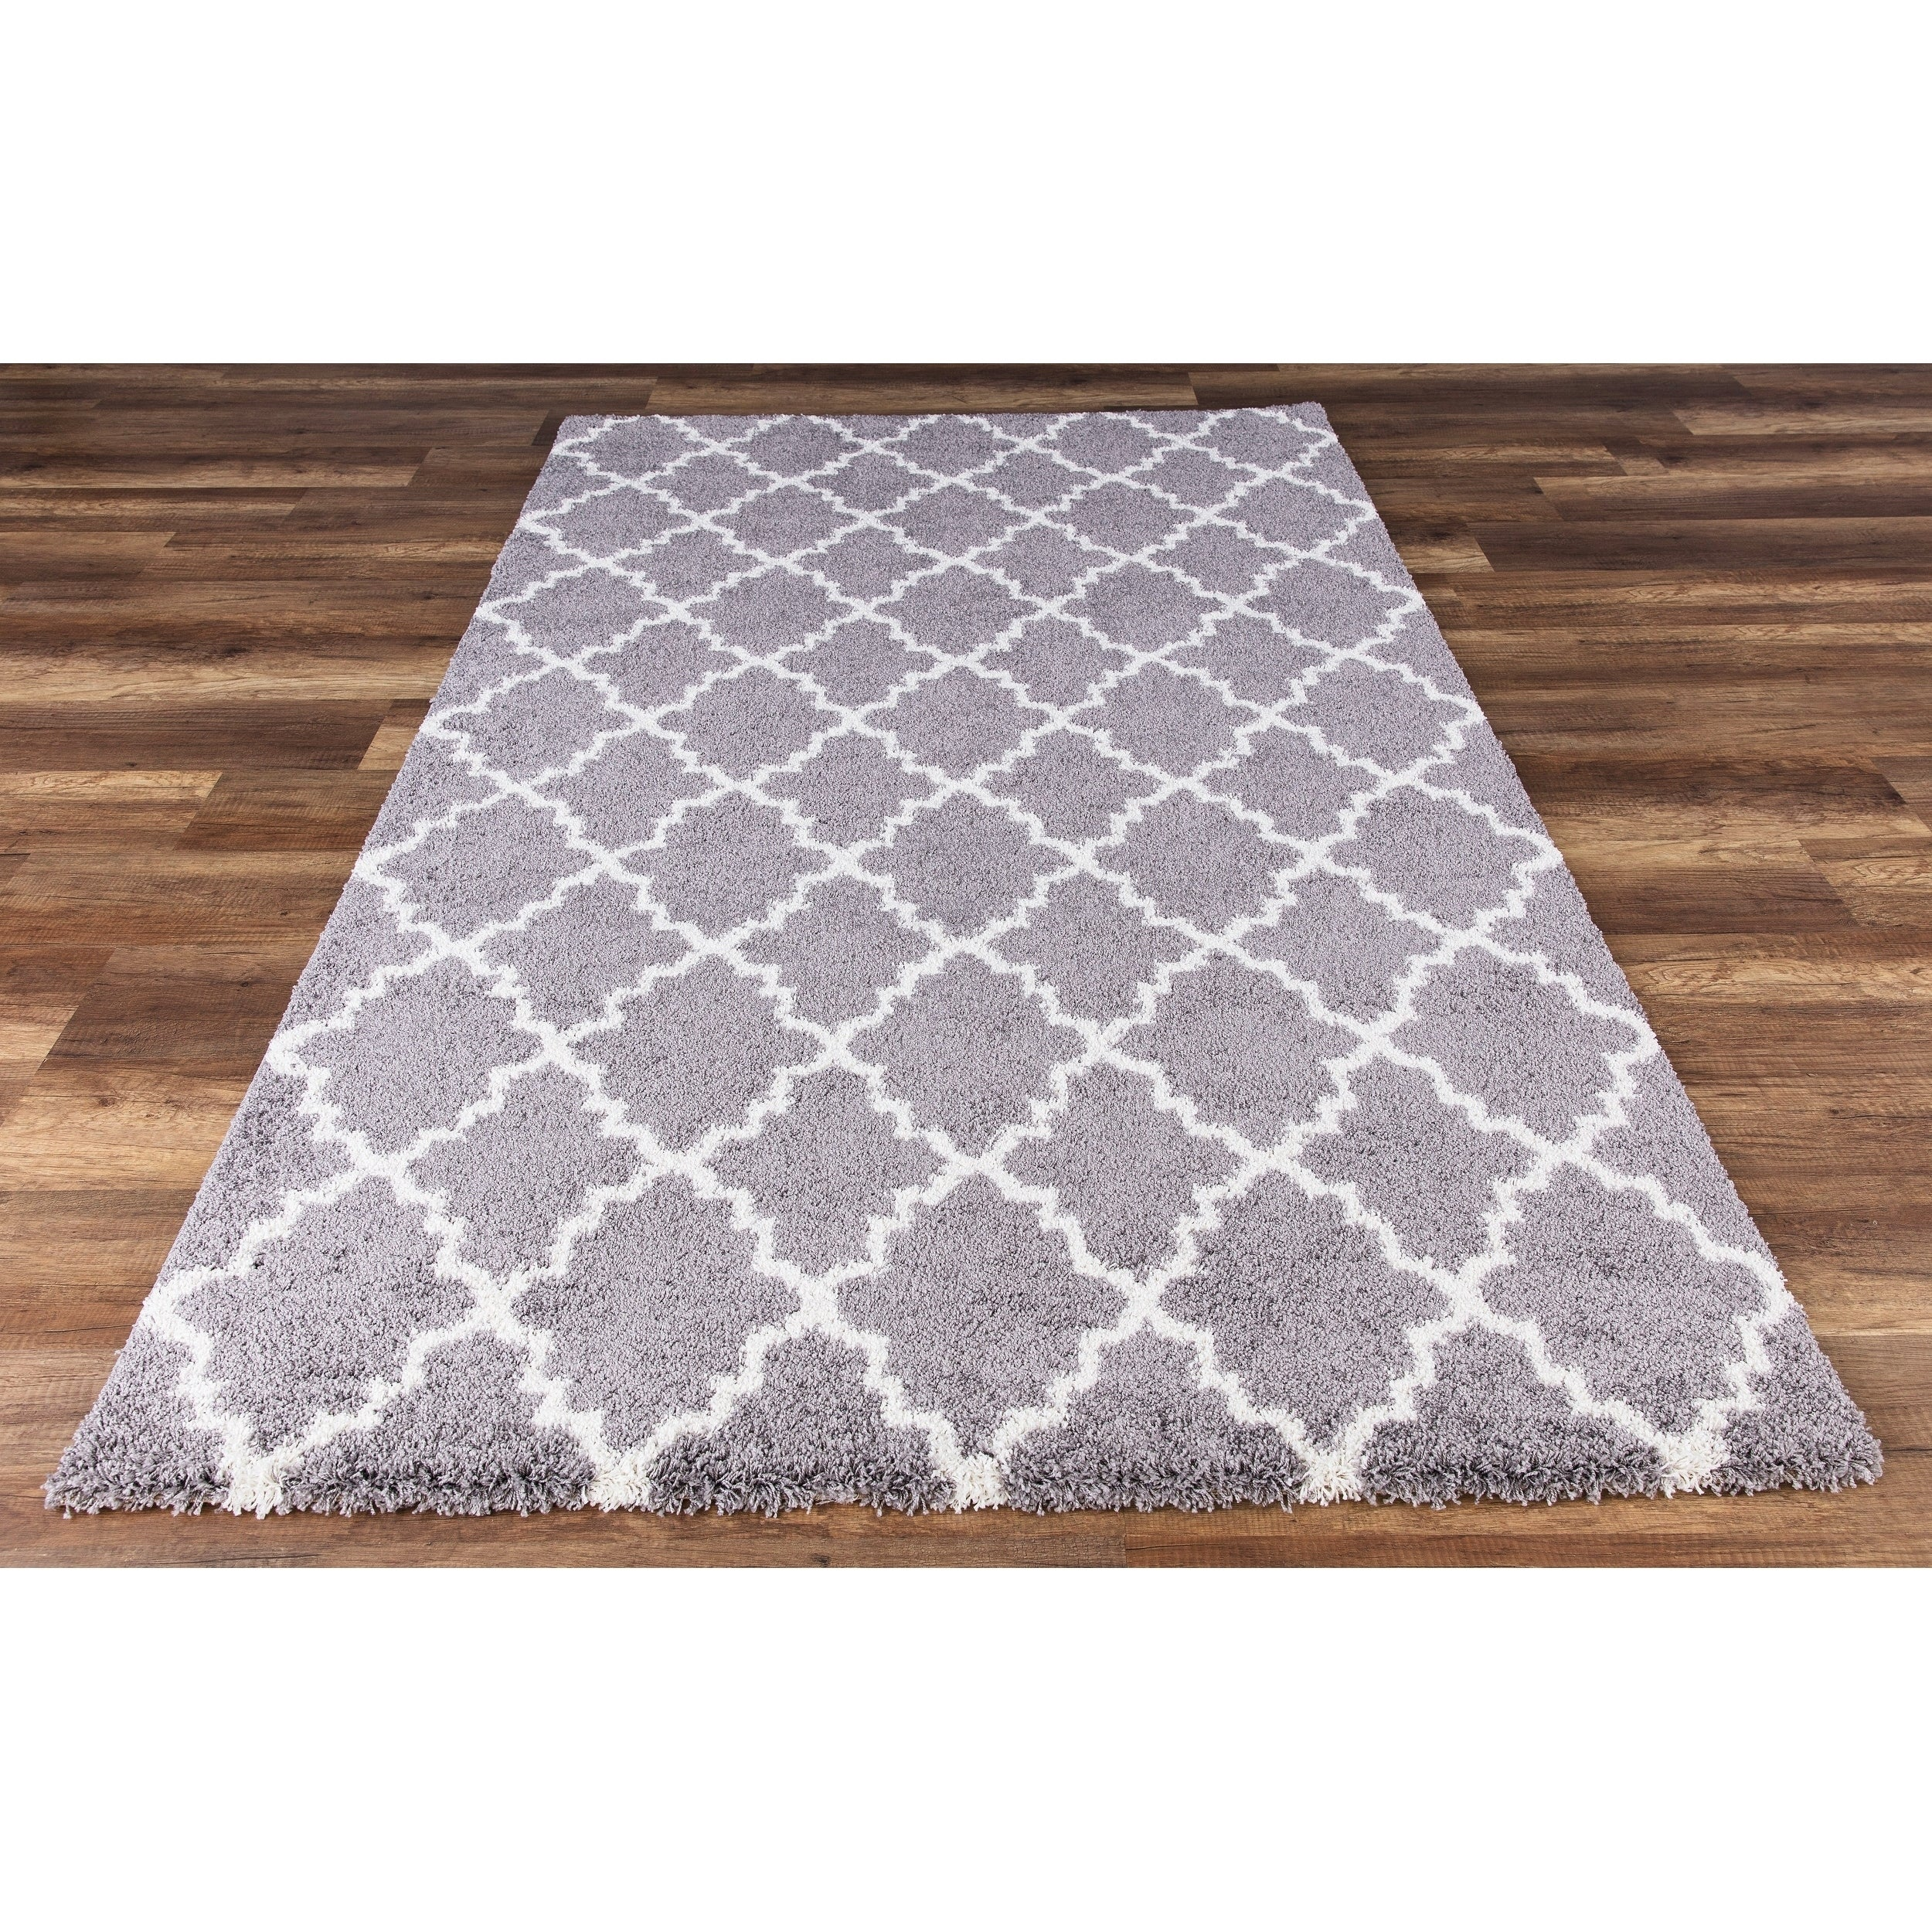 Soft Cozy Plush Gy Area Rug